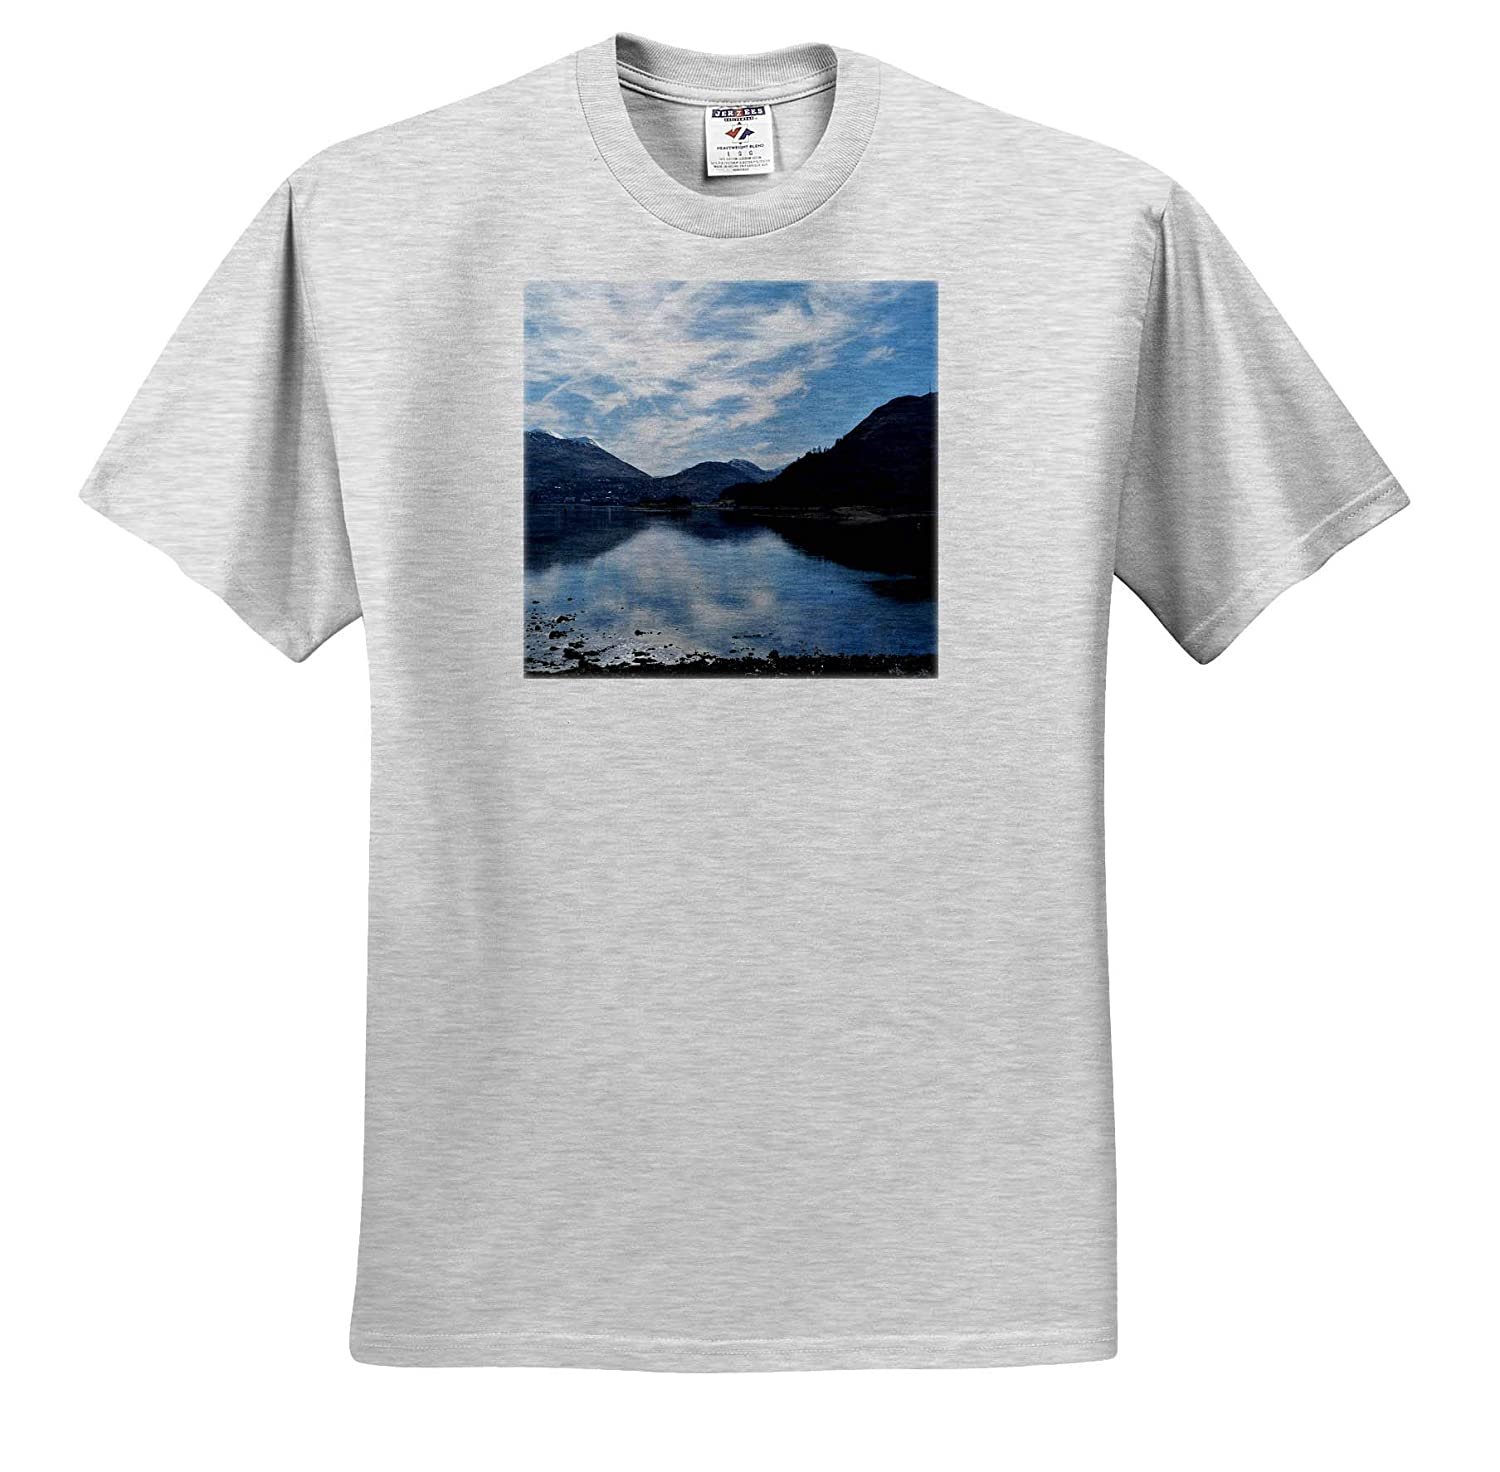 Loch Lhinnie Loch View at Caol Photograph 3dRose Made in The Highlands T-Shirts Highlands of Scotland